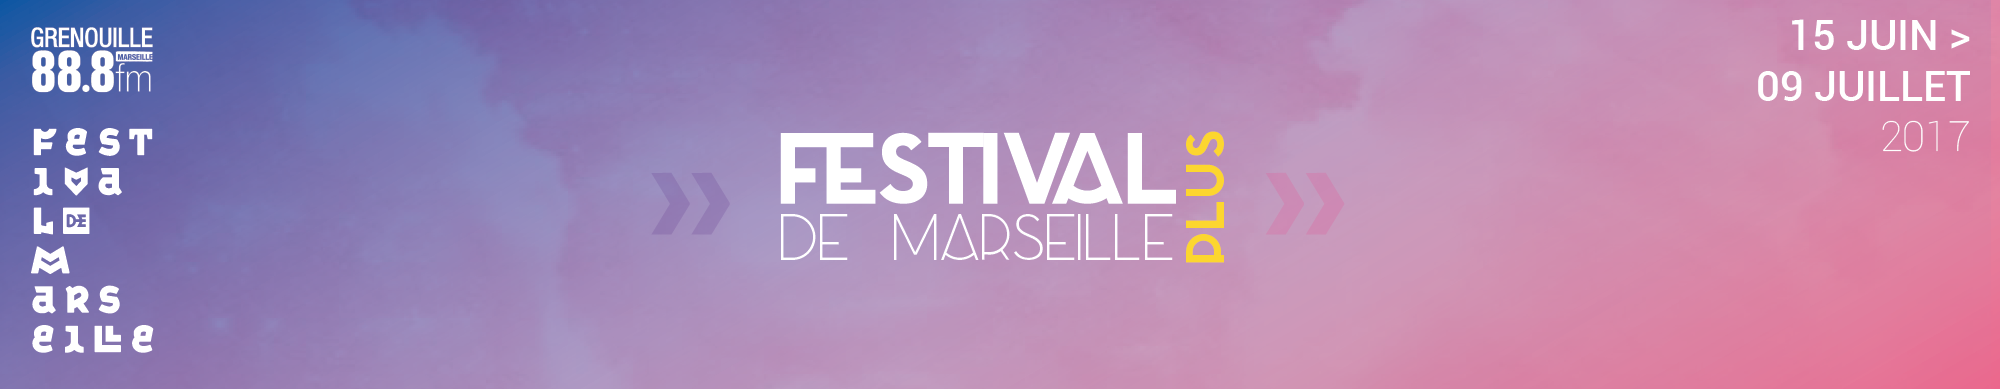 festival de marseille logo. Black Bedroom Furniture Sets. Home Design Ideas